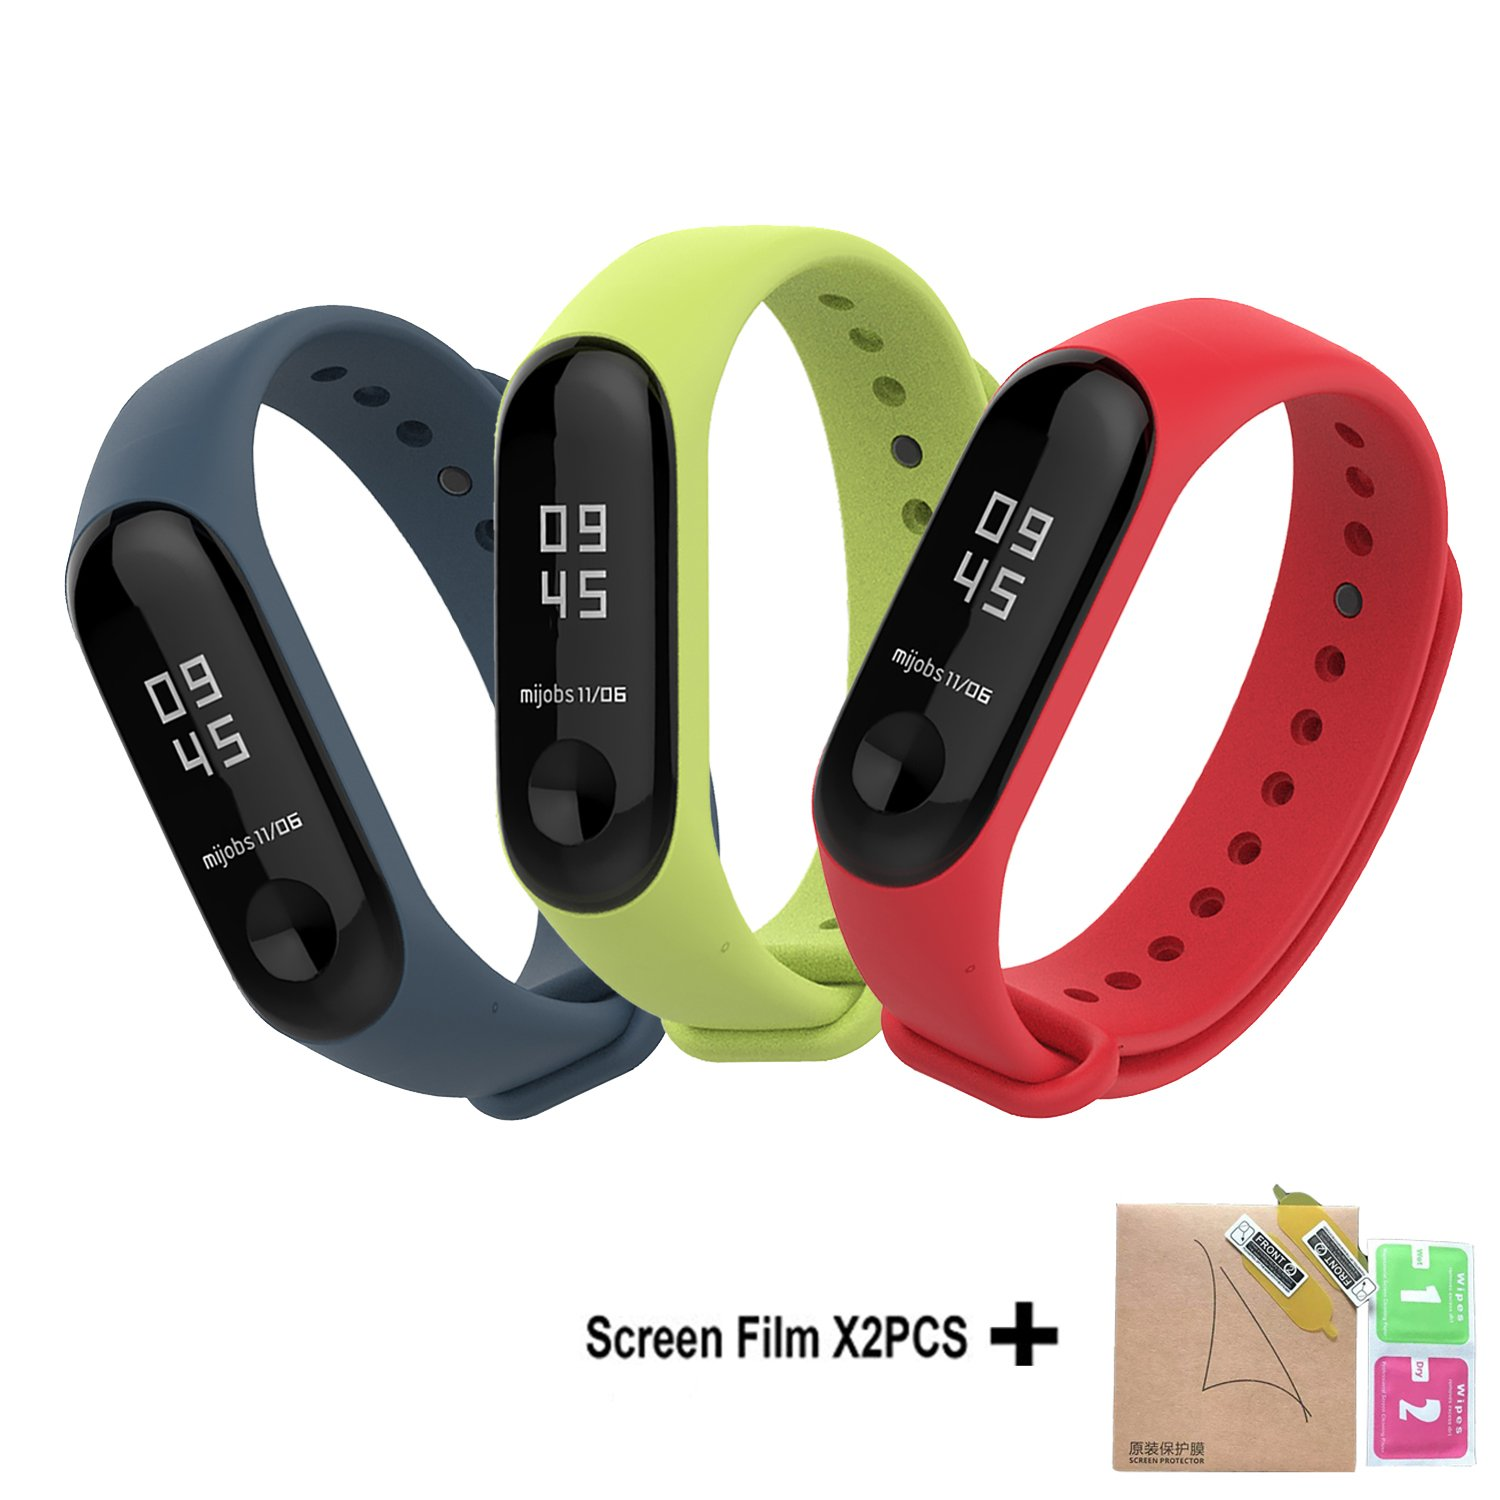 Bdig Xiaomi Mi Band 3 Strap Bracelet Replacementcolorful Waterproof 2 Oled Replacement Stainless Steel Mijobs Silver Soft Silicone Wristband Watchband Accessories For Miband